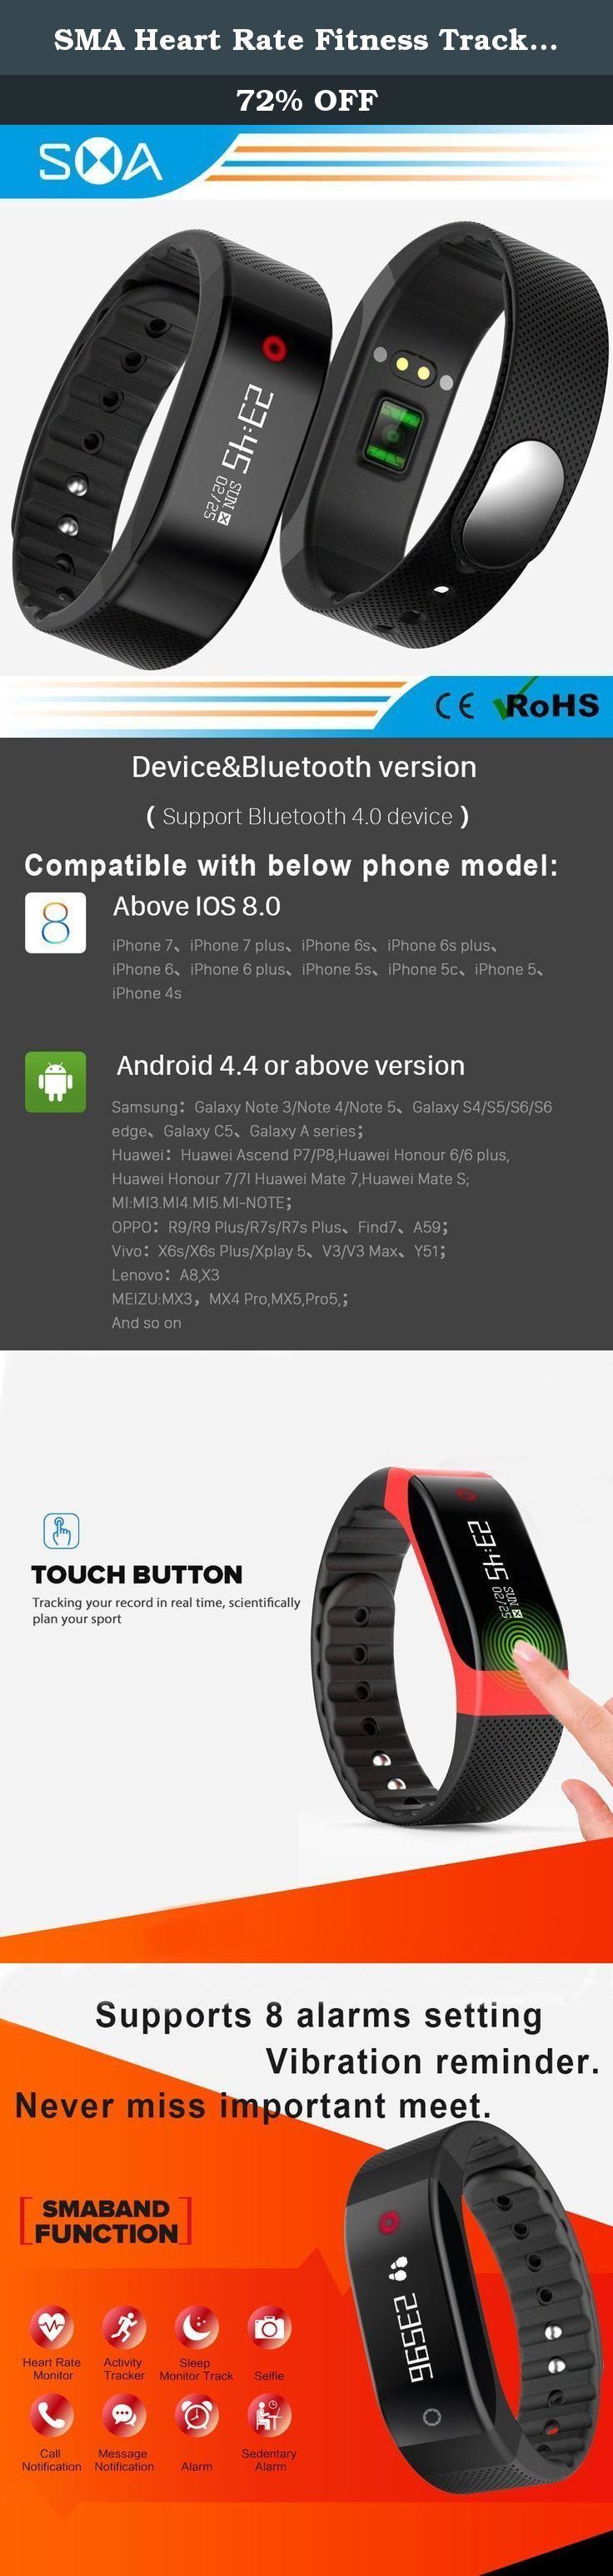 SMA Heart Rate Fitness Tracker, Waterproof Wristband Smart Watch Sports Bracelet Compatible Iphone/Android phones men/women Black. SMA Heart Rate Fitness Tracker, Waterproof Wristband Sports Bracelet Compatible Iphone/Android phones men/women Black Main Feature 1) Two Mode of dynamic heart rate monitor: br> a.Monitor your heart rate 24 hours, you can set in Application, every 15 or 30 or 60 minutes checking once, then SMA Wristband will monitor your heart rate every 15 or 30 or 60 minutes...